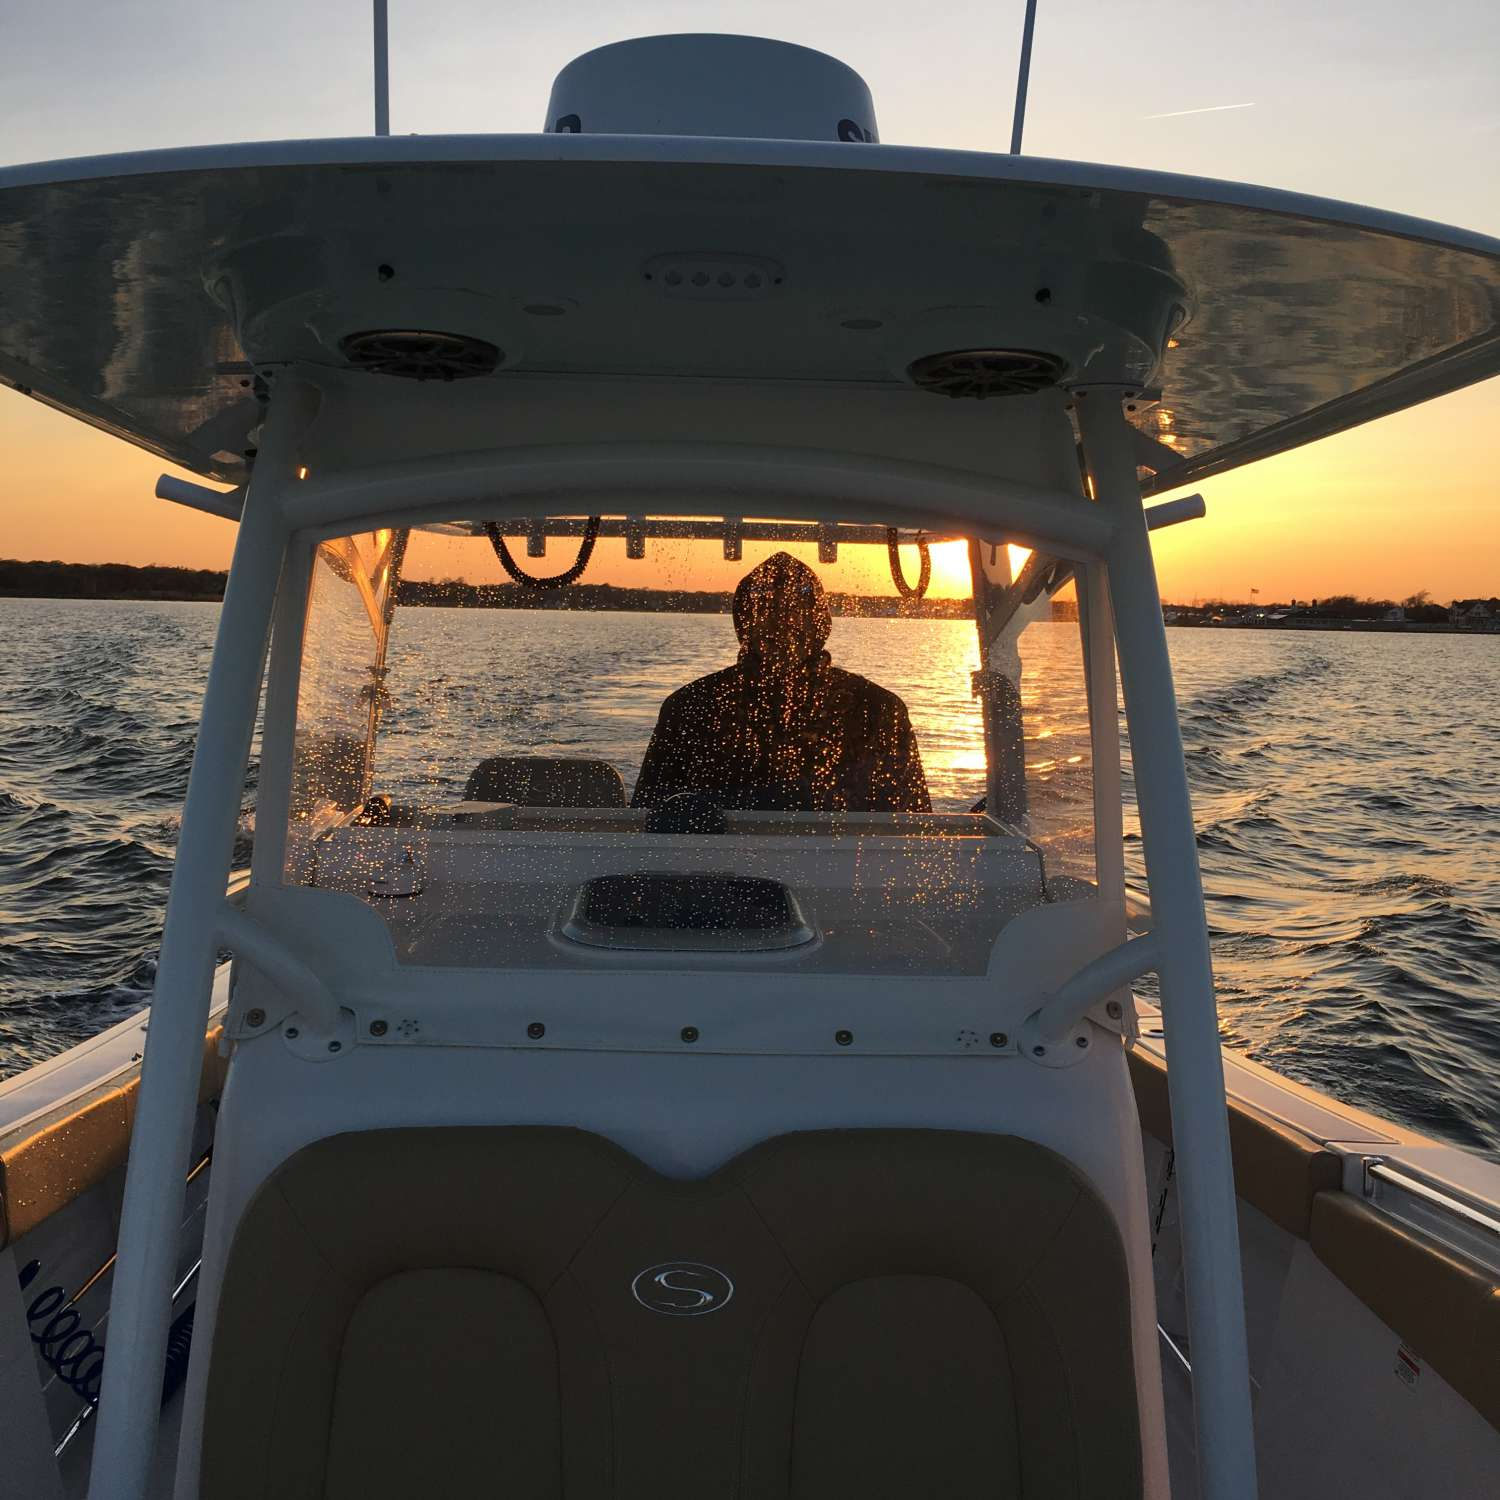 Title: Sunset 312 - On board their Sportsman More Than One - Location: Bohemia, New York. Participating in the Photo Contest #SportsmanMay2016